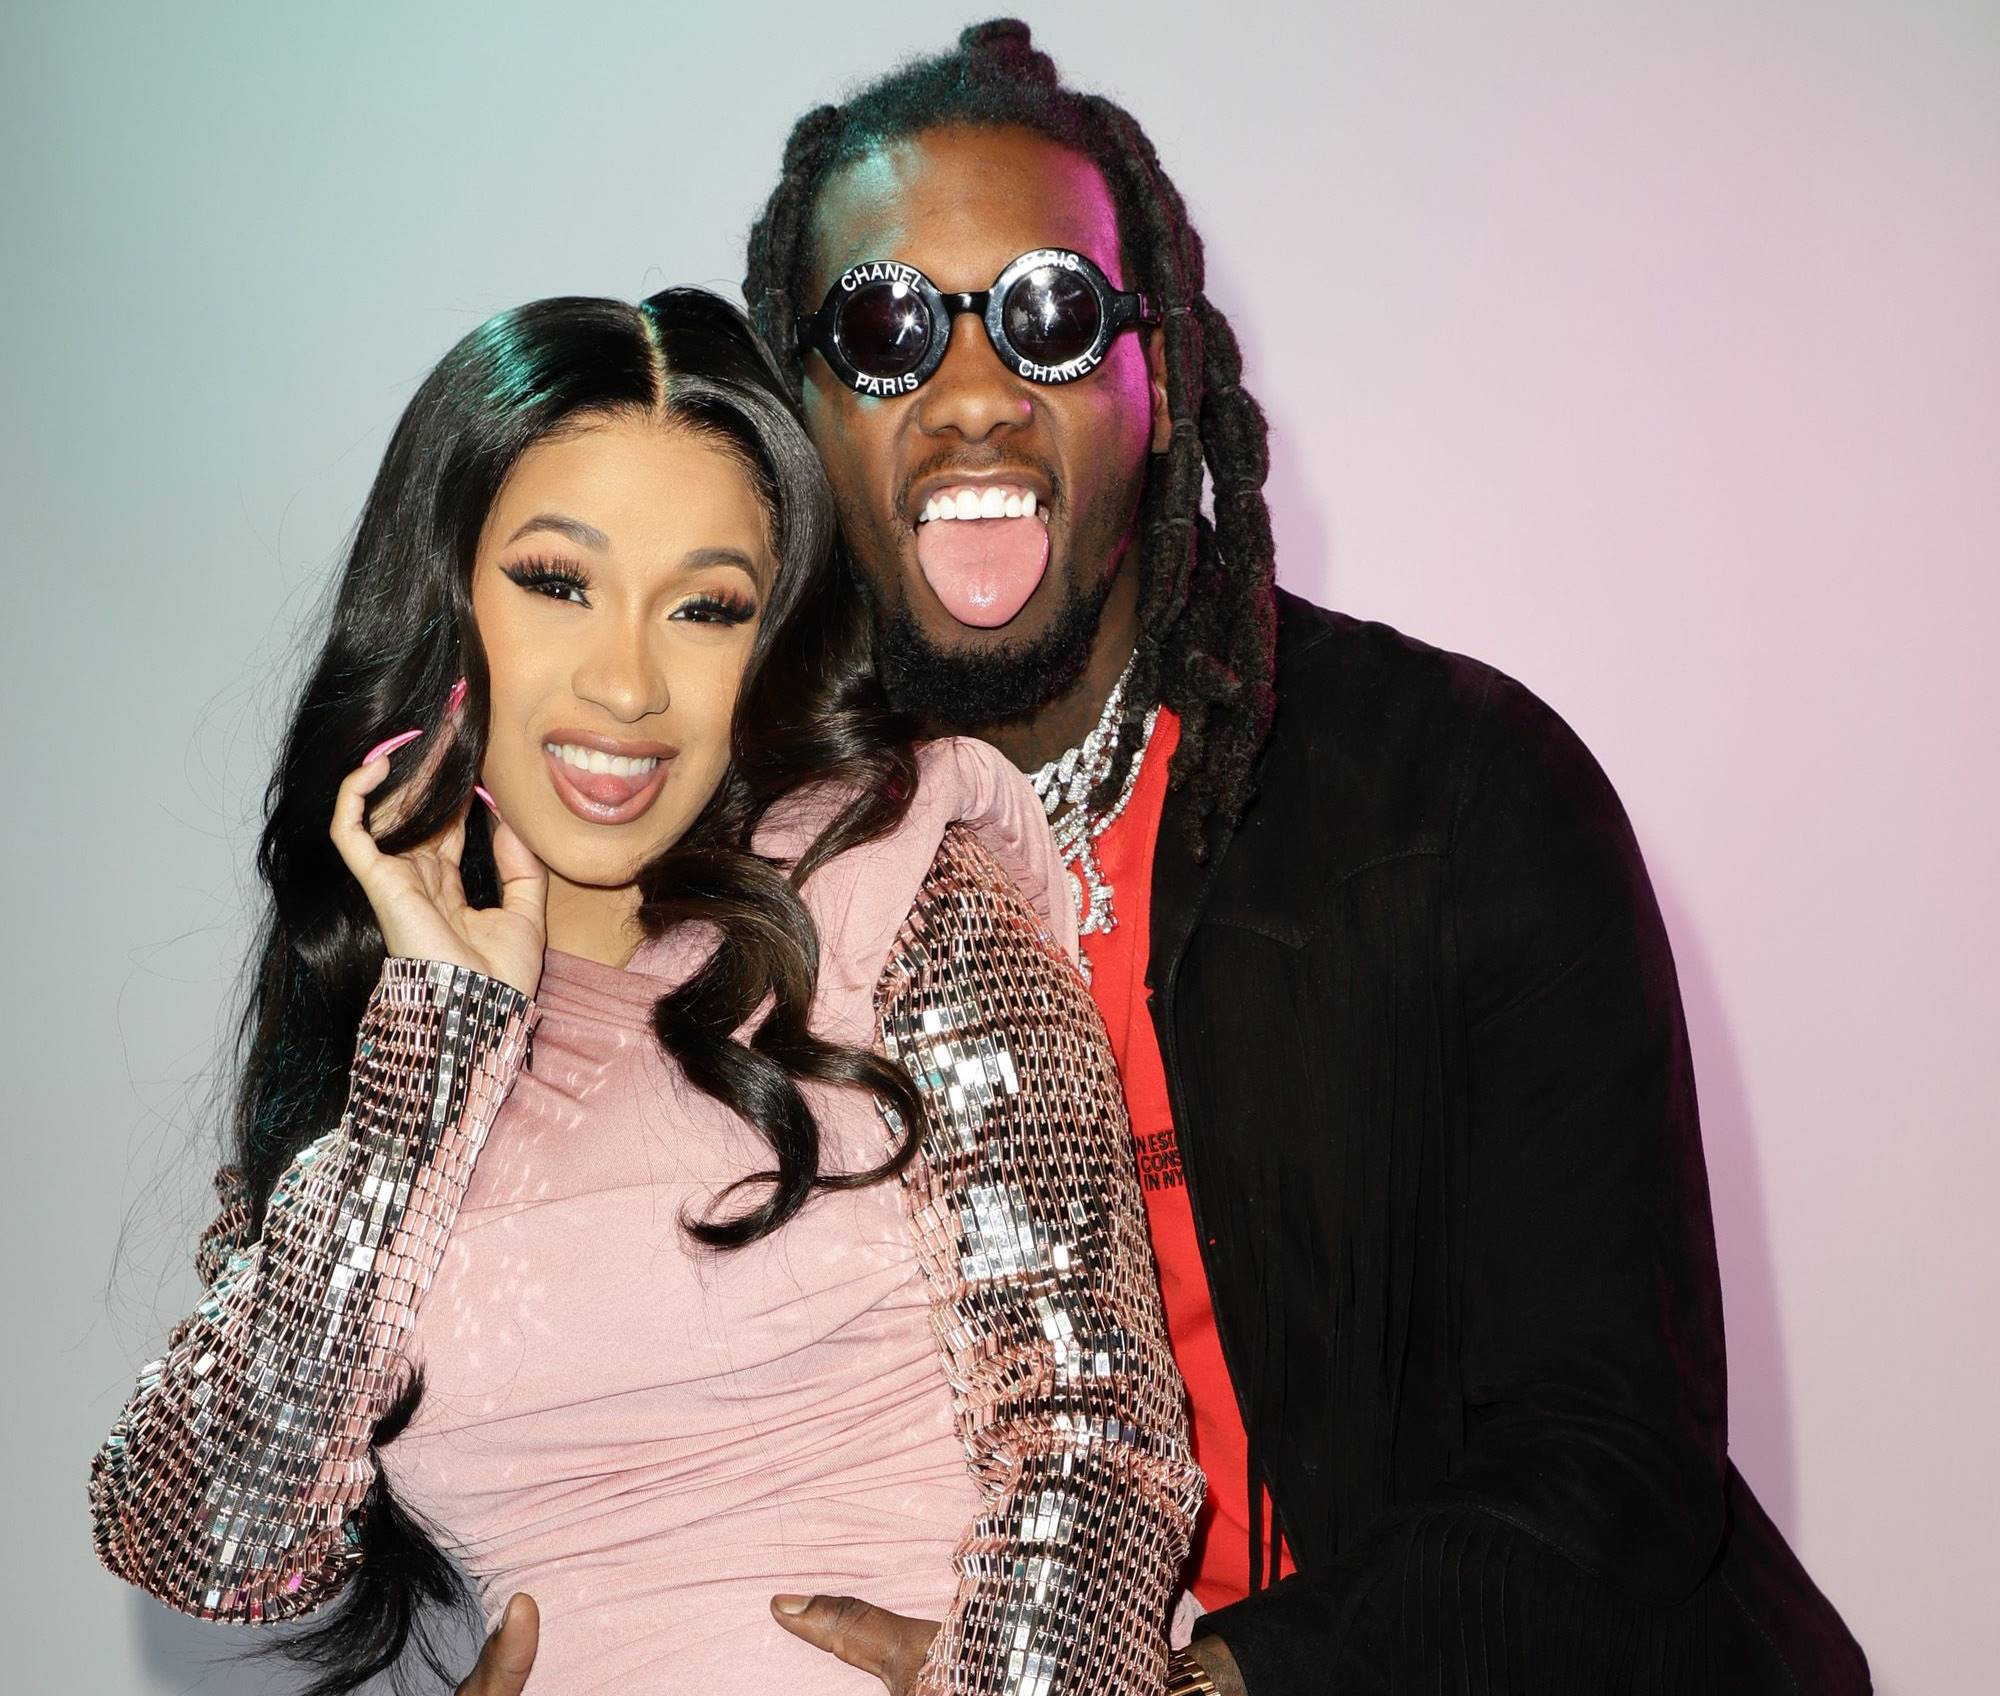 """cardi-b-shows-off-her-curves-in-pink-bikini-some-say-offsets-wife-is-morphing-into-kim-kardashian-picture-explains-why-he-will-not-let-her-go"""